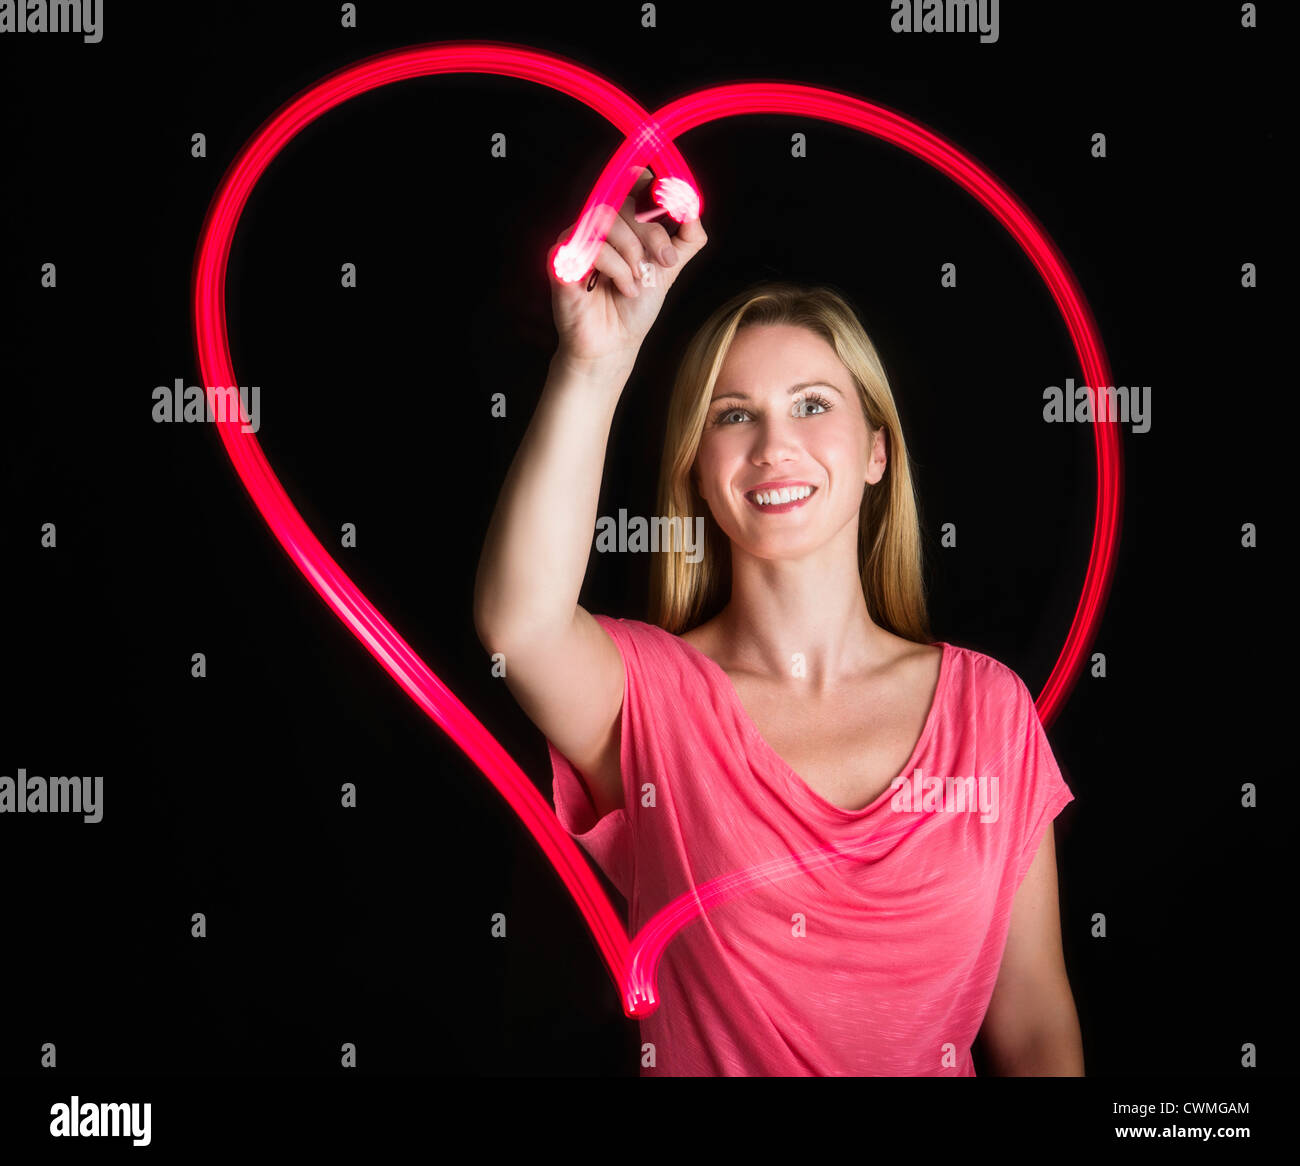 Woman drawing heart on black background Stock Photo